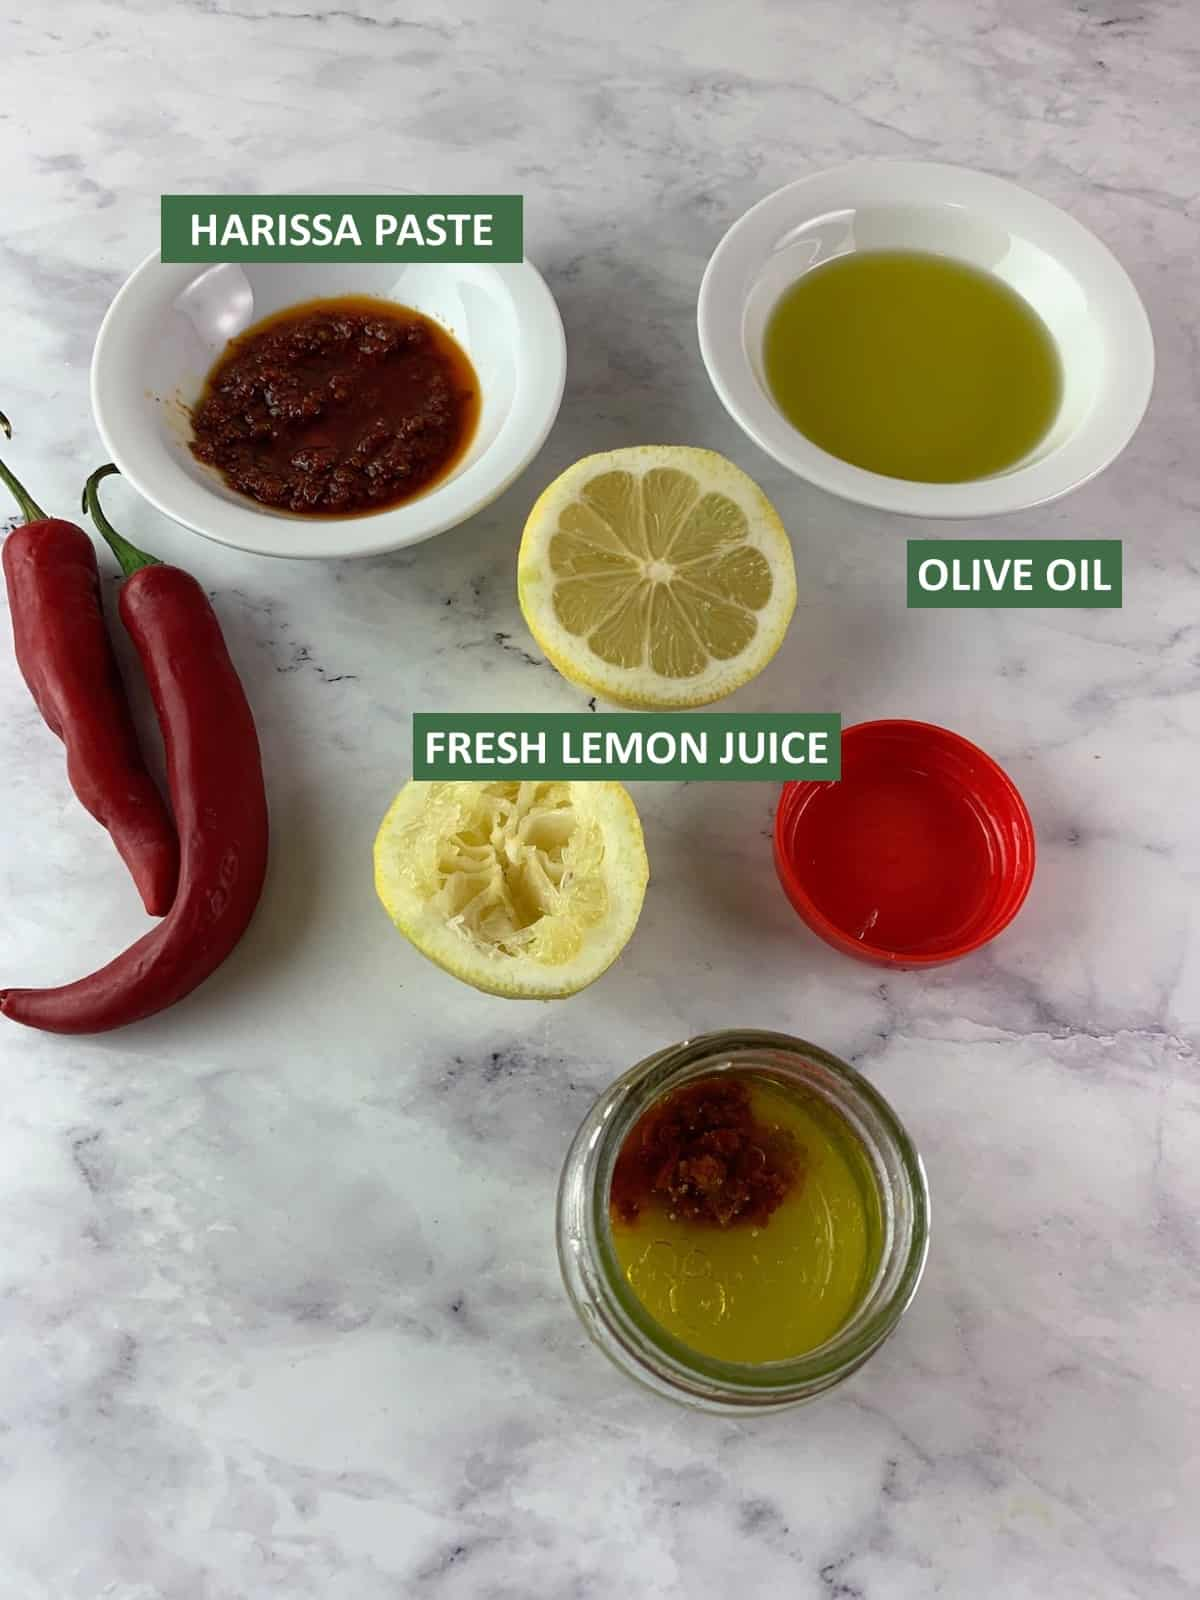 INGREDIENTS NEEDED TO MAKE HARISSA VINAIGRETTE